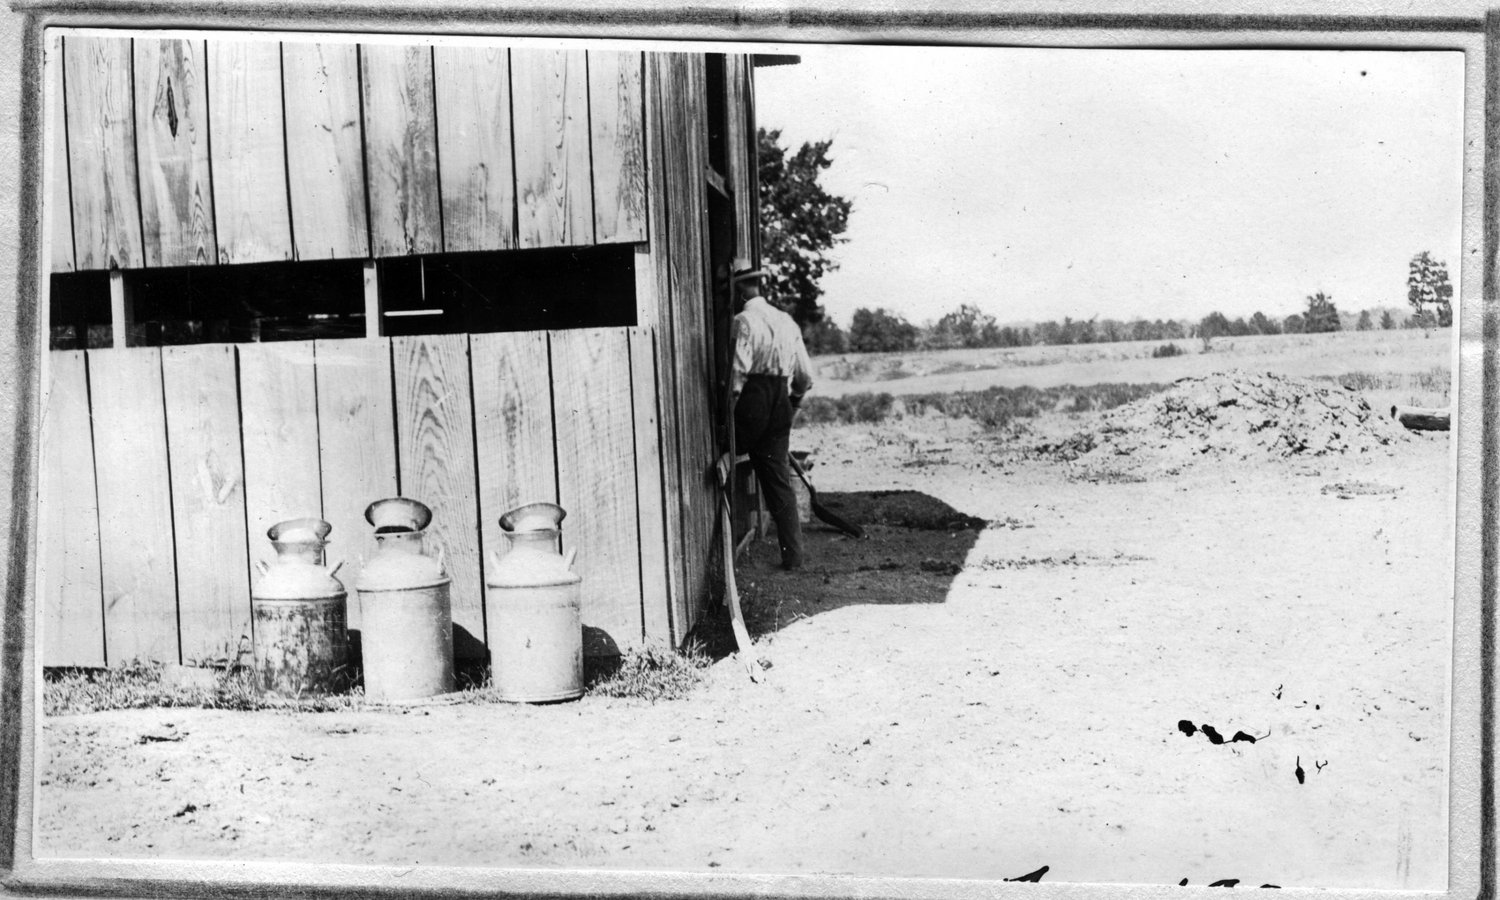 155~J. R. Fiveash Barn Aug 1920.jpg